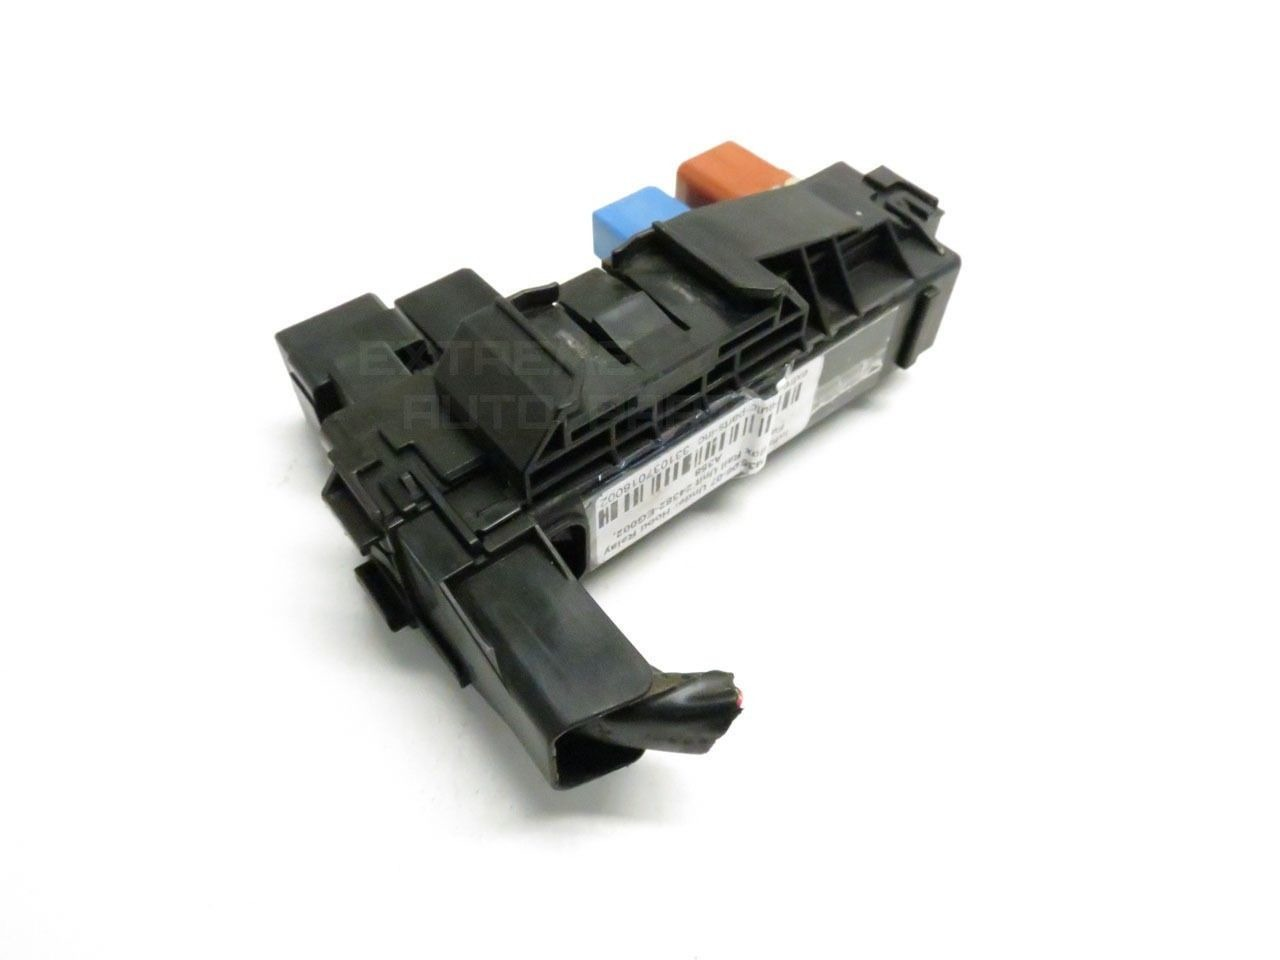 ... Infiniti M35 06-07 Under Hood Relay Fuse Box Rail Unit 24382-EG002